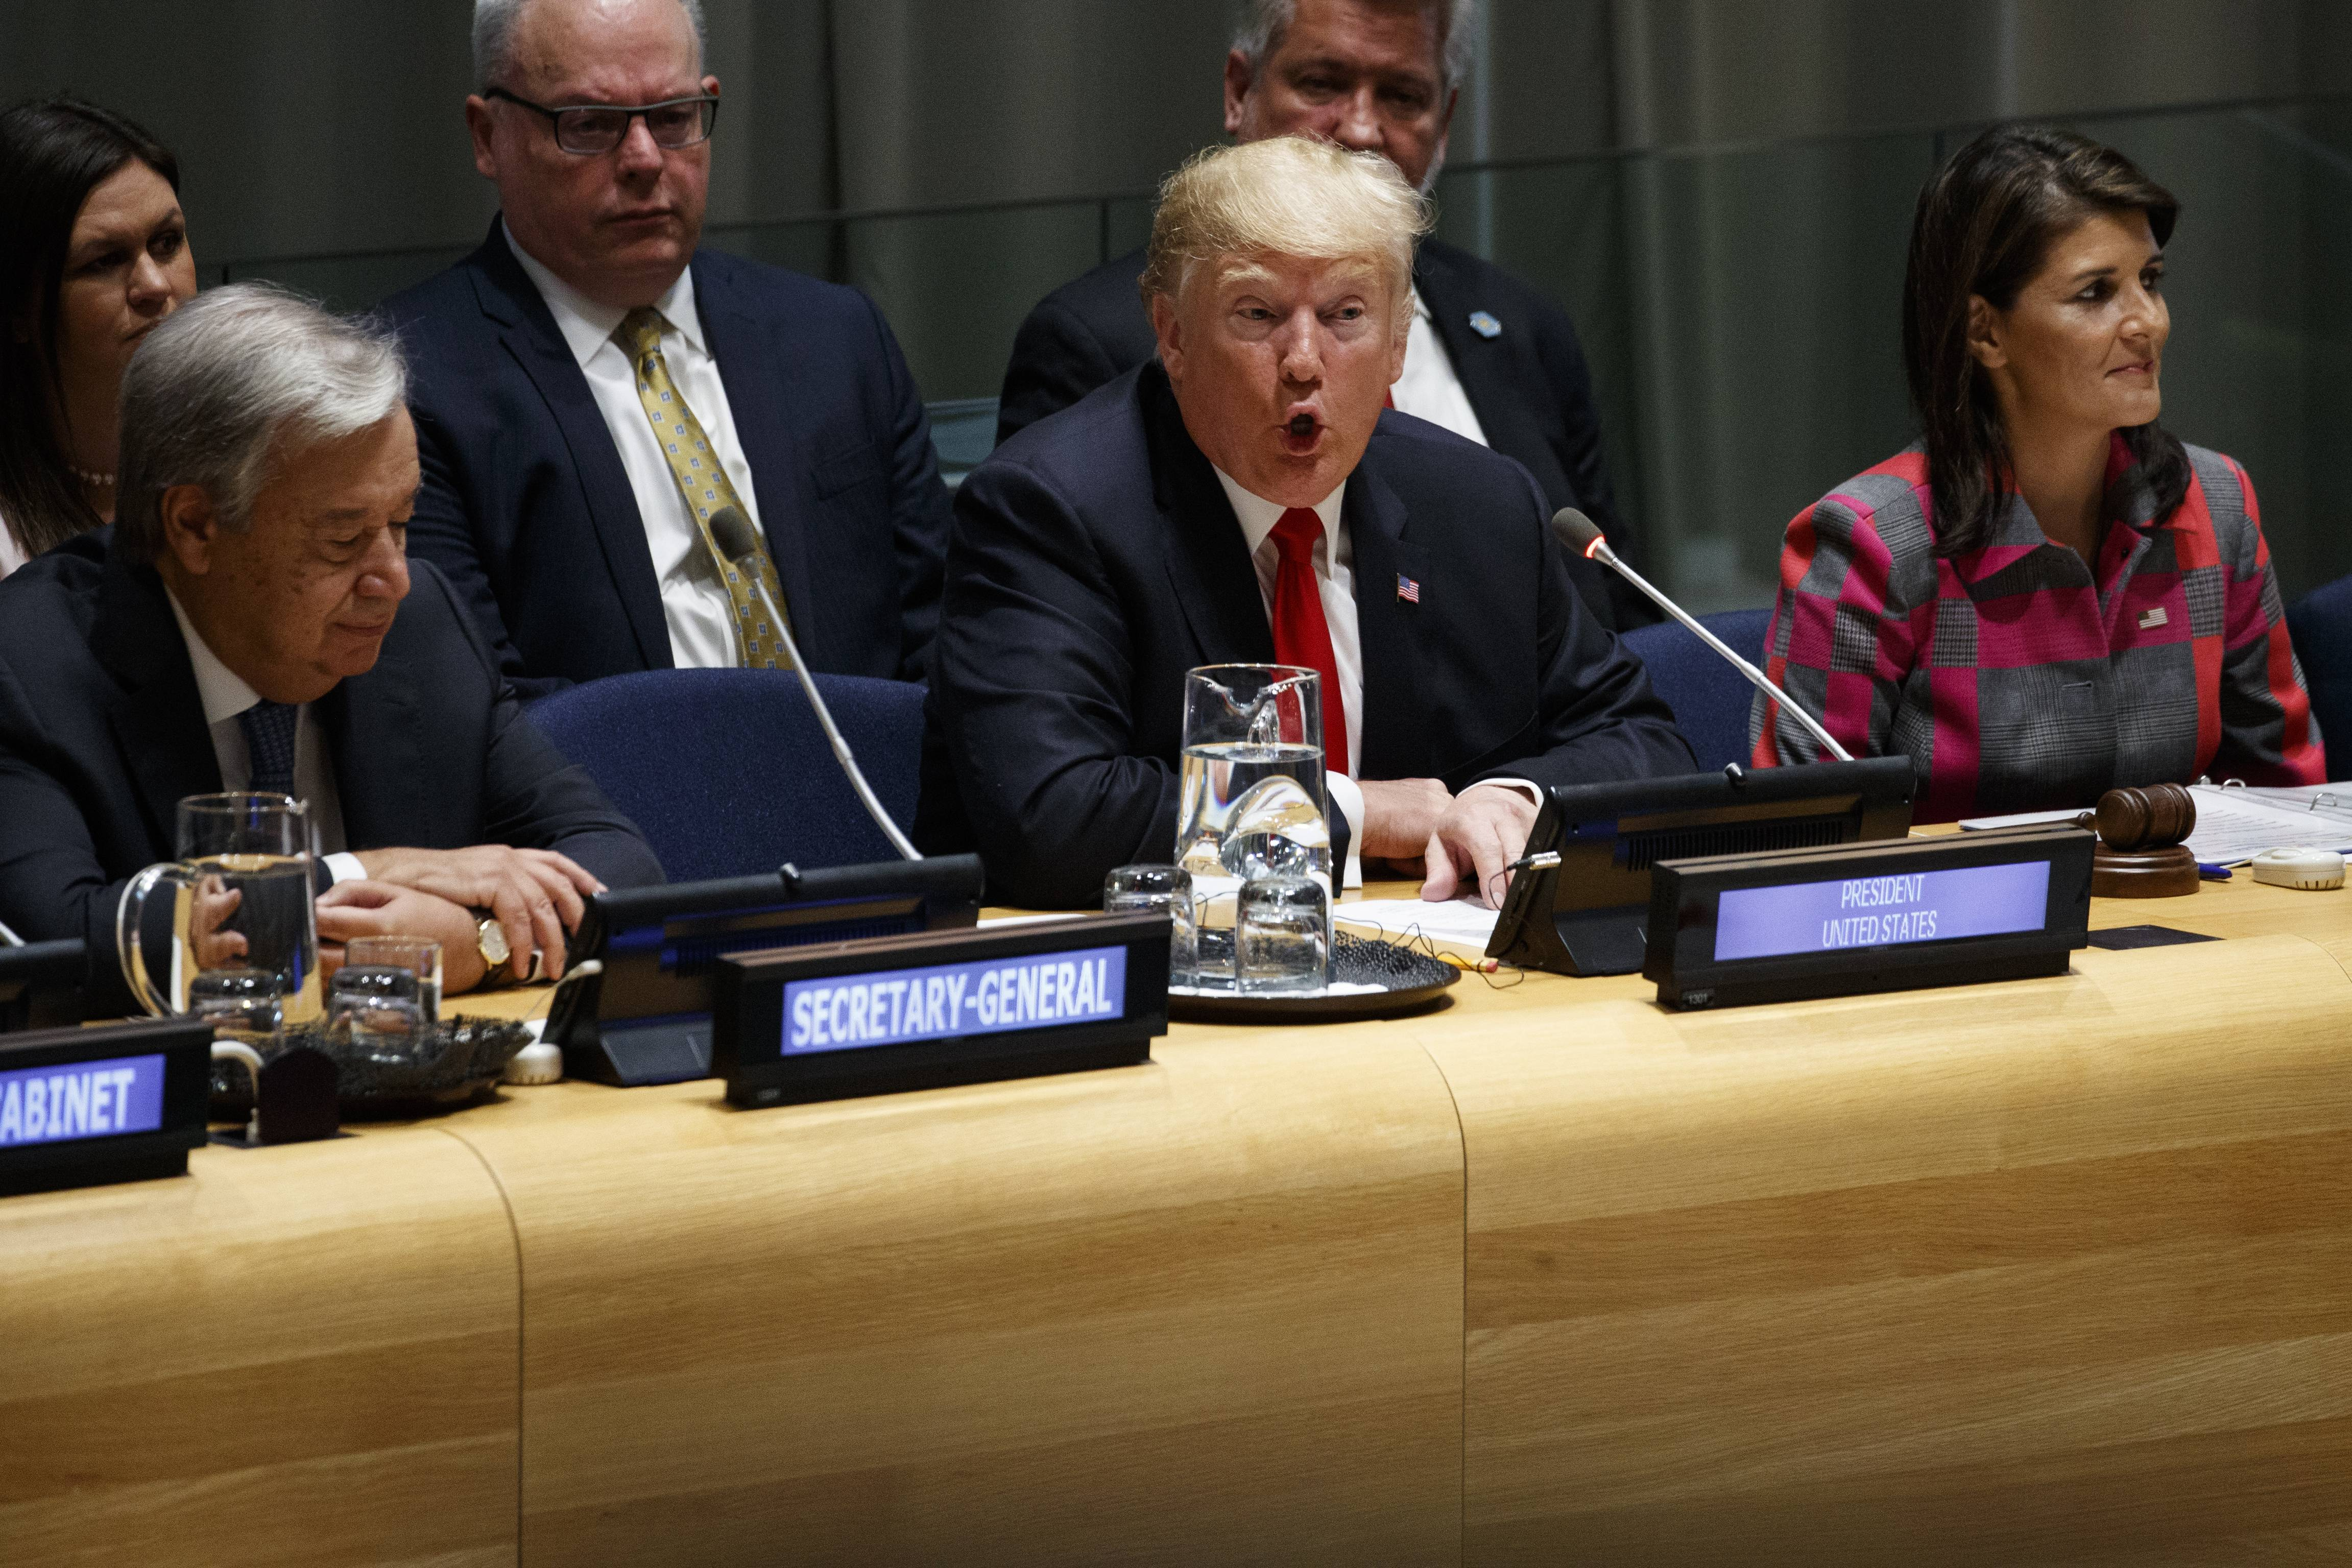 FILE - In this Sept. 19, 2017, file photo, President Donald Trump speaks during the United Nations General Assembly at U.N. headquarters. When Trump makes his second address to the United Nations and wields the Security Council gavel for the first time he will face leaders of a global order he upended in the last 12 months by pulling out of the Iran deal, embracing Russia and alienating longtime Western allies over trade and defense spending. (AP Photo/Seth Wenig, File)